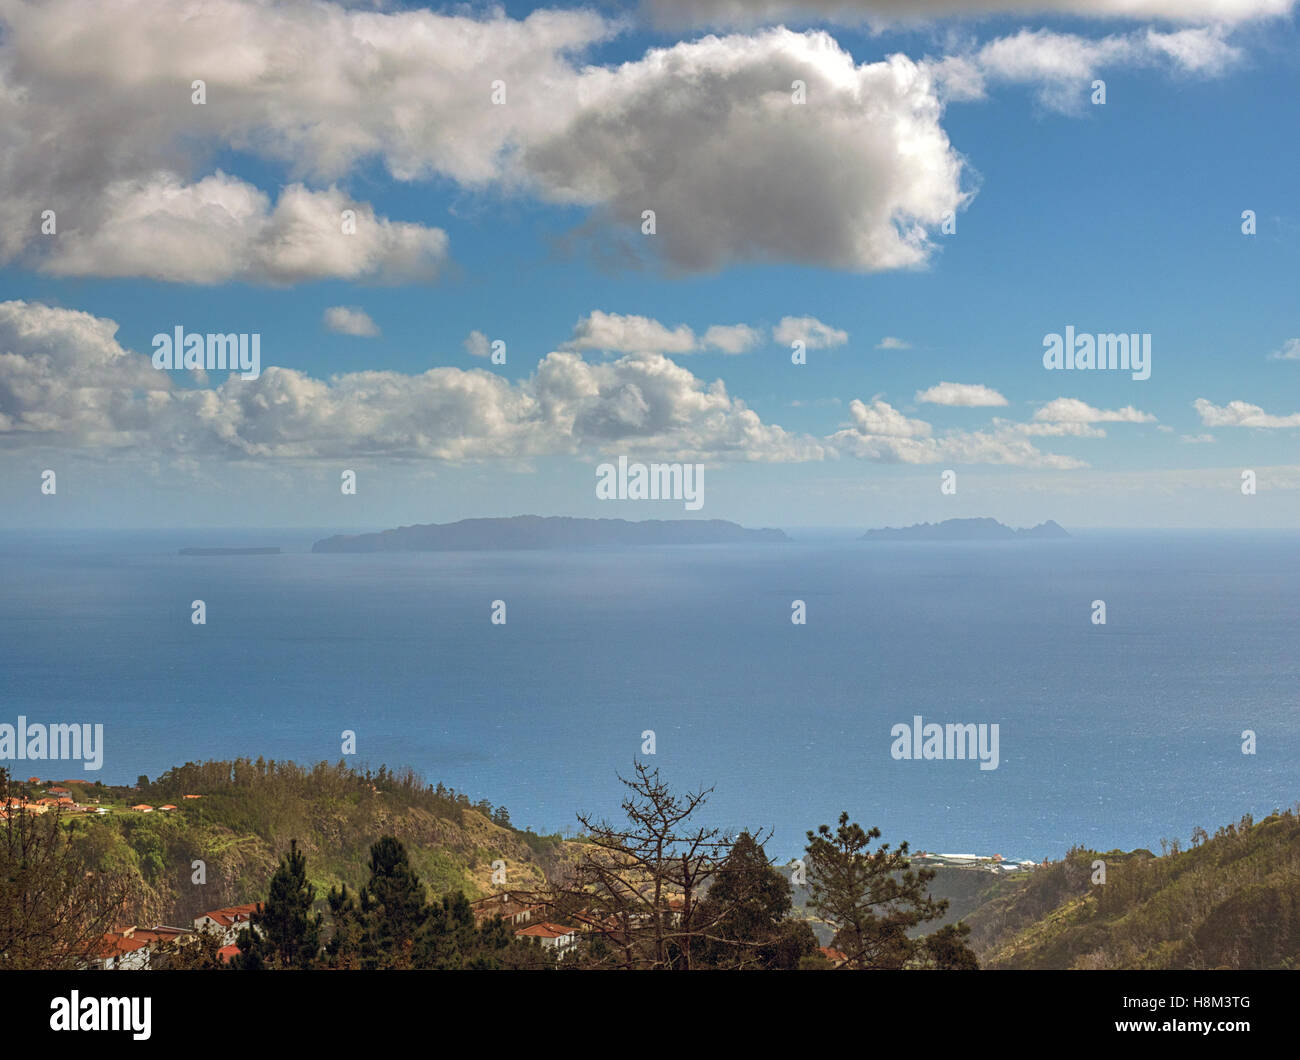 Ilhas Desertas (Deserted Islands) in the Atlantic, viewed from the island of Madeira, Portugal - Stock Image